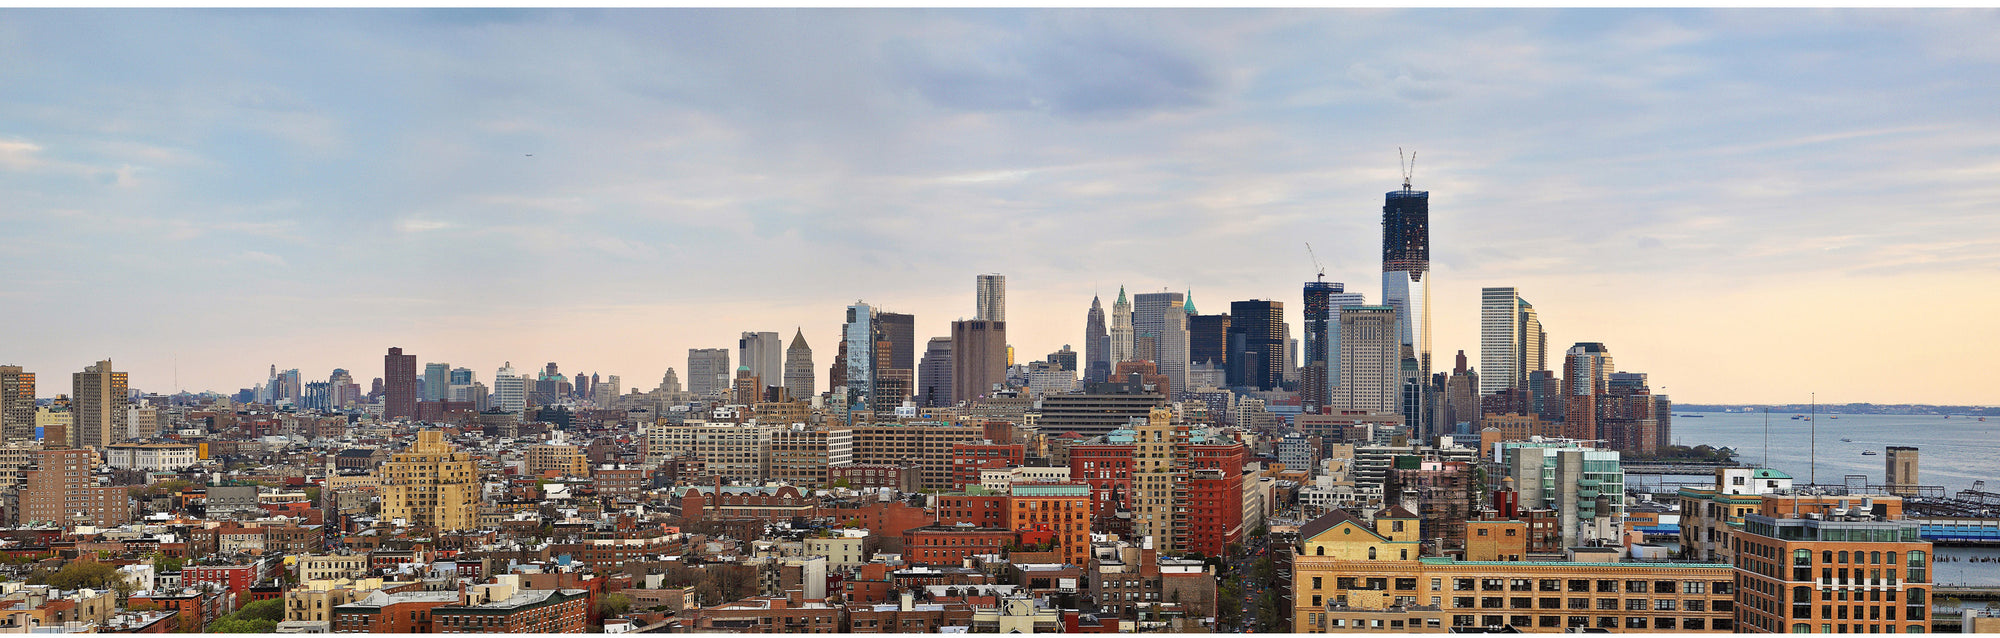 Skyline of New York Financial district - Limited Edition 60 cm x 150 cm